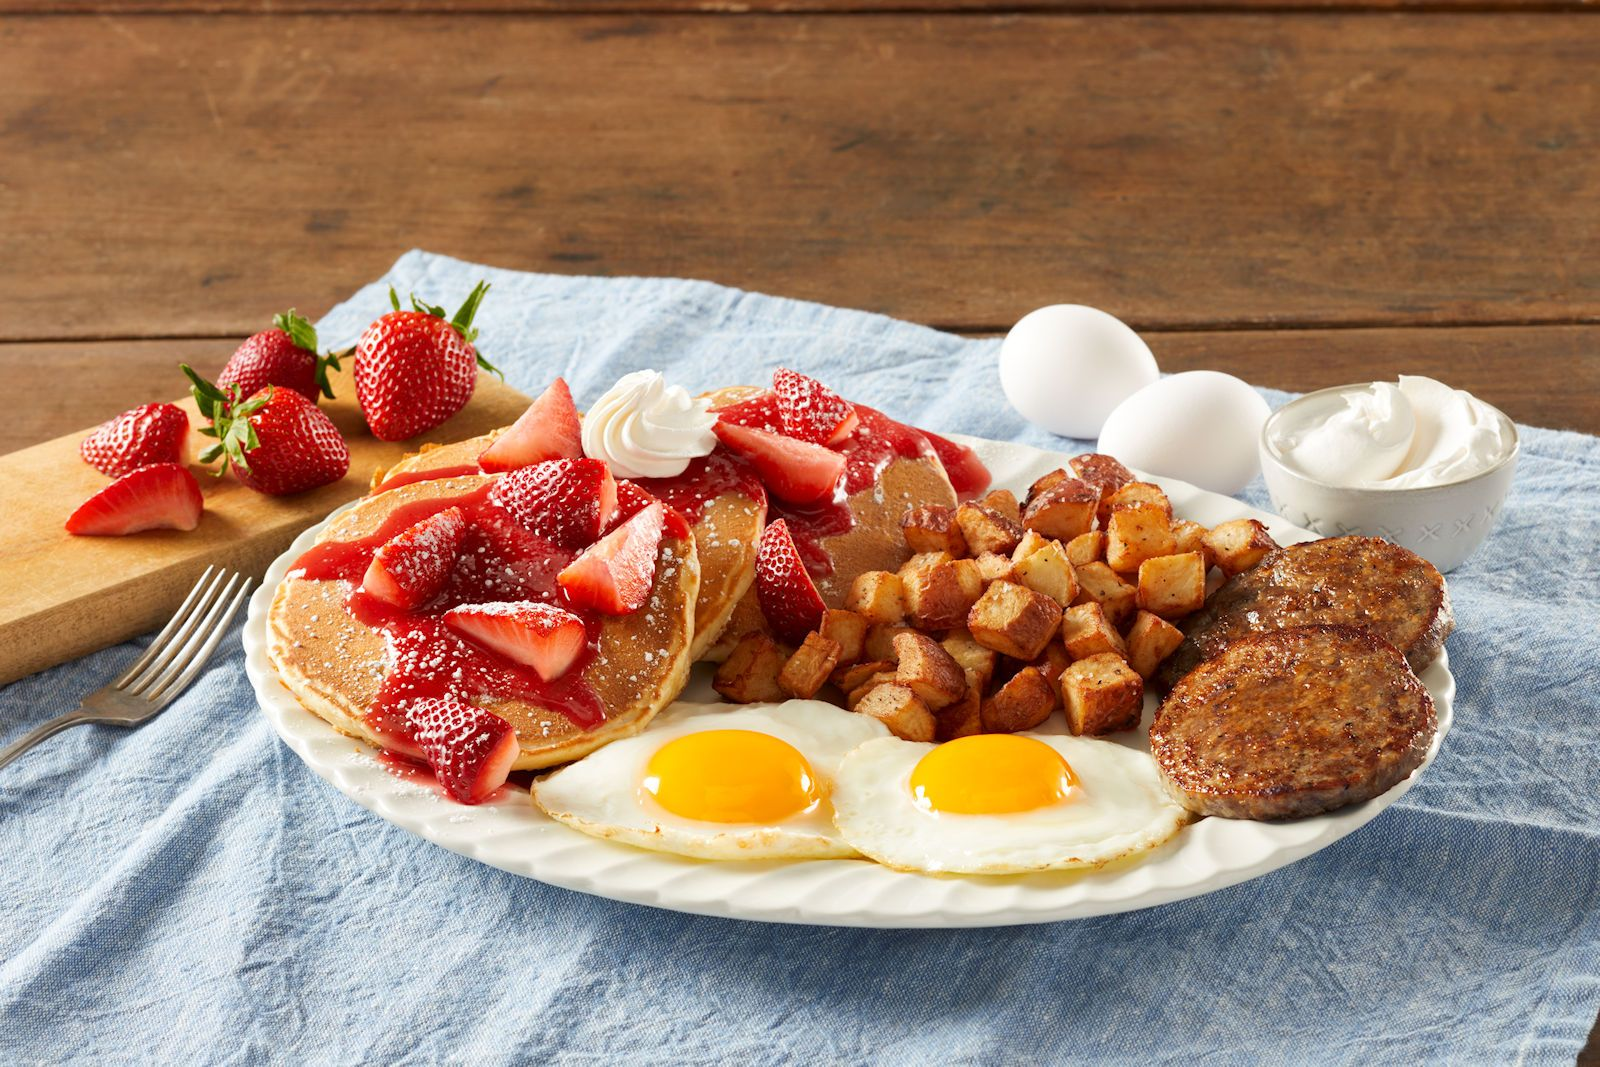 Bob Evans Restaurants Introduces New Farm-Fresh Berry Dishes for Spring